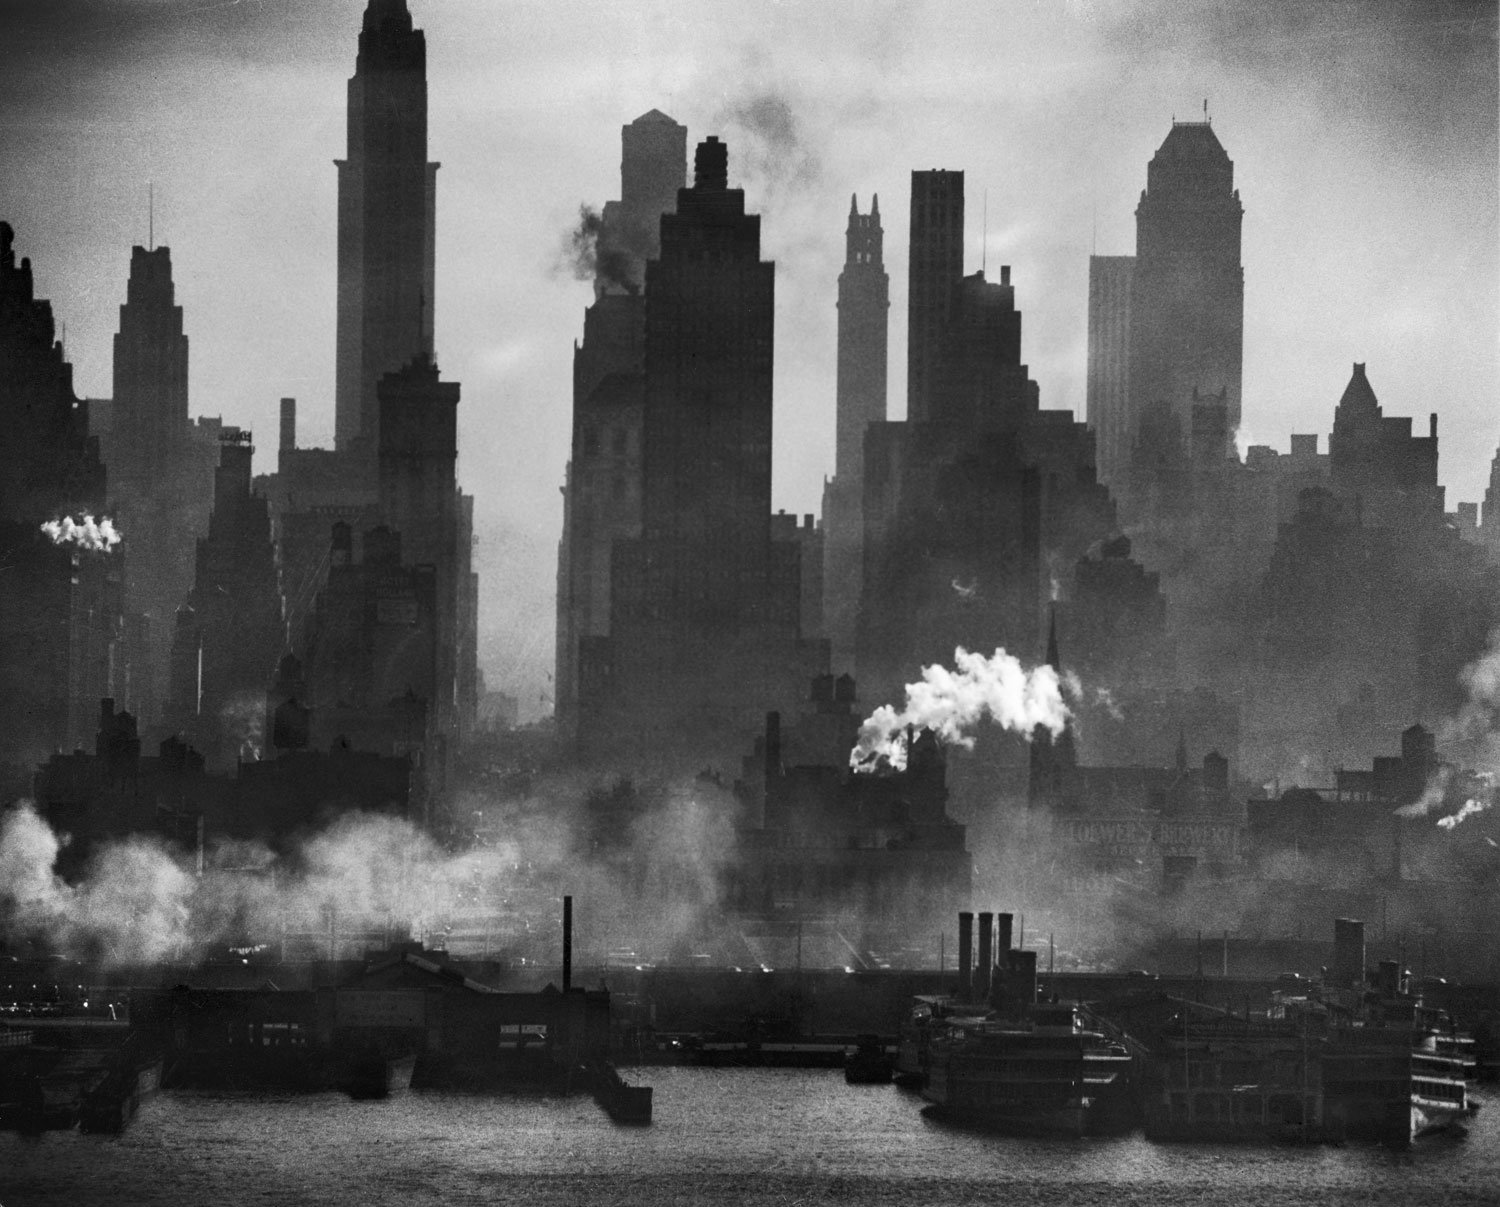 Landscape Photography New York Across the Hudson, NYC, by Andreas Feininger